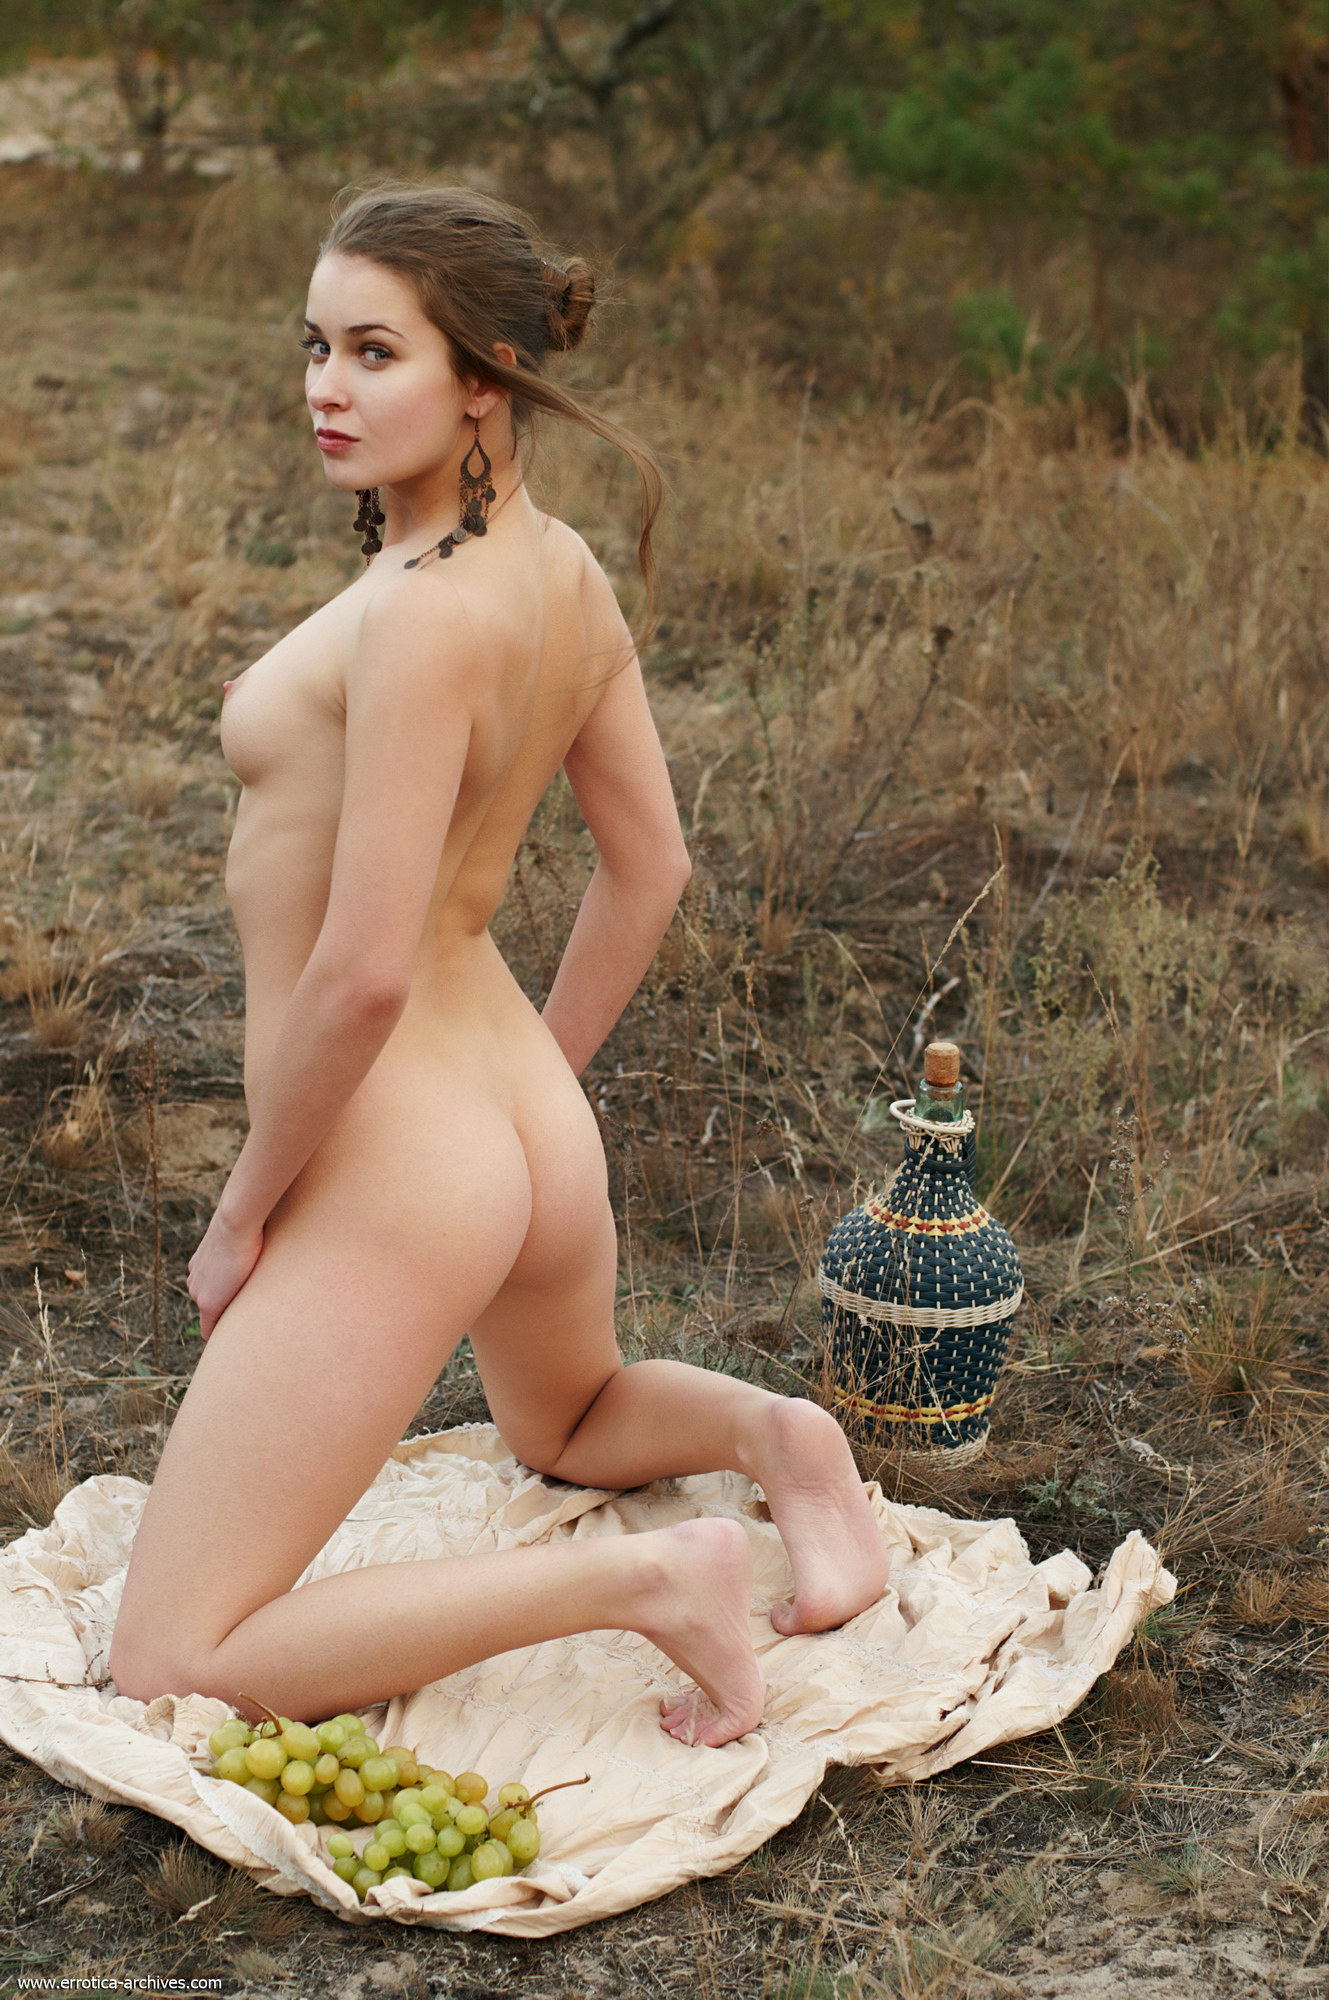 milana-naked-jug-wine-grapes-outdoor-errotica-archives-35